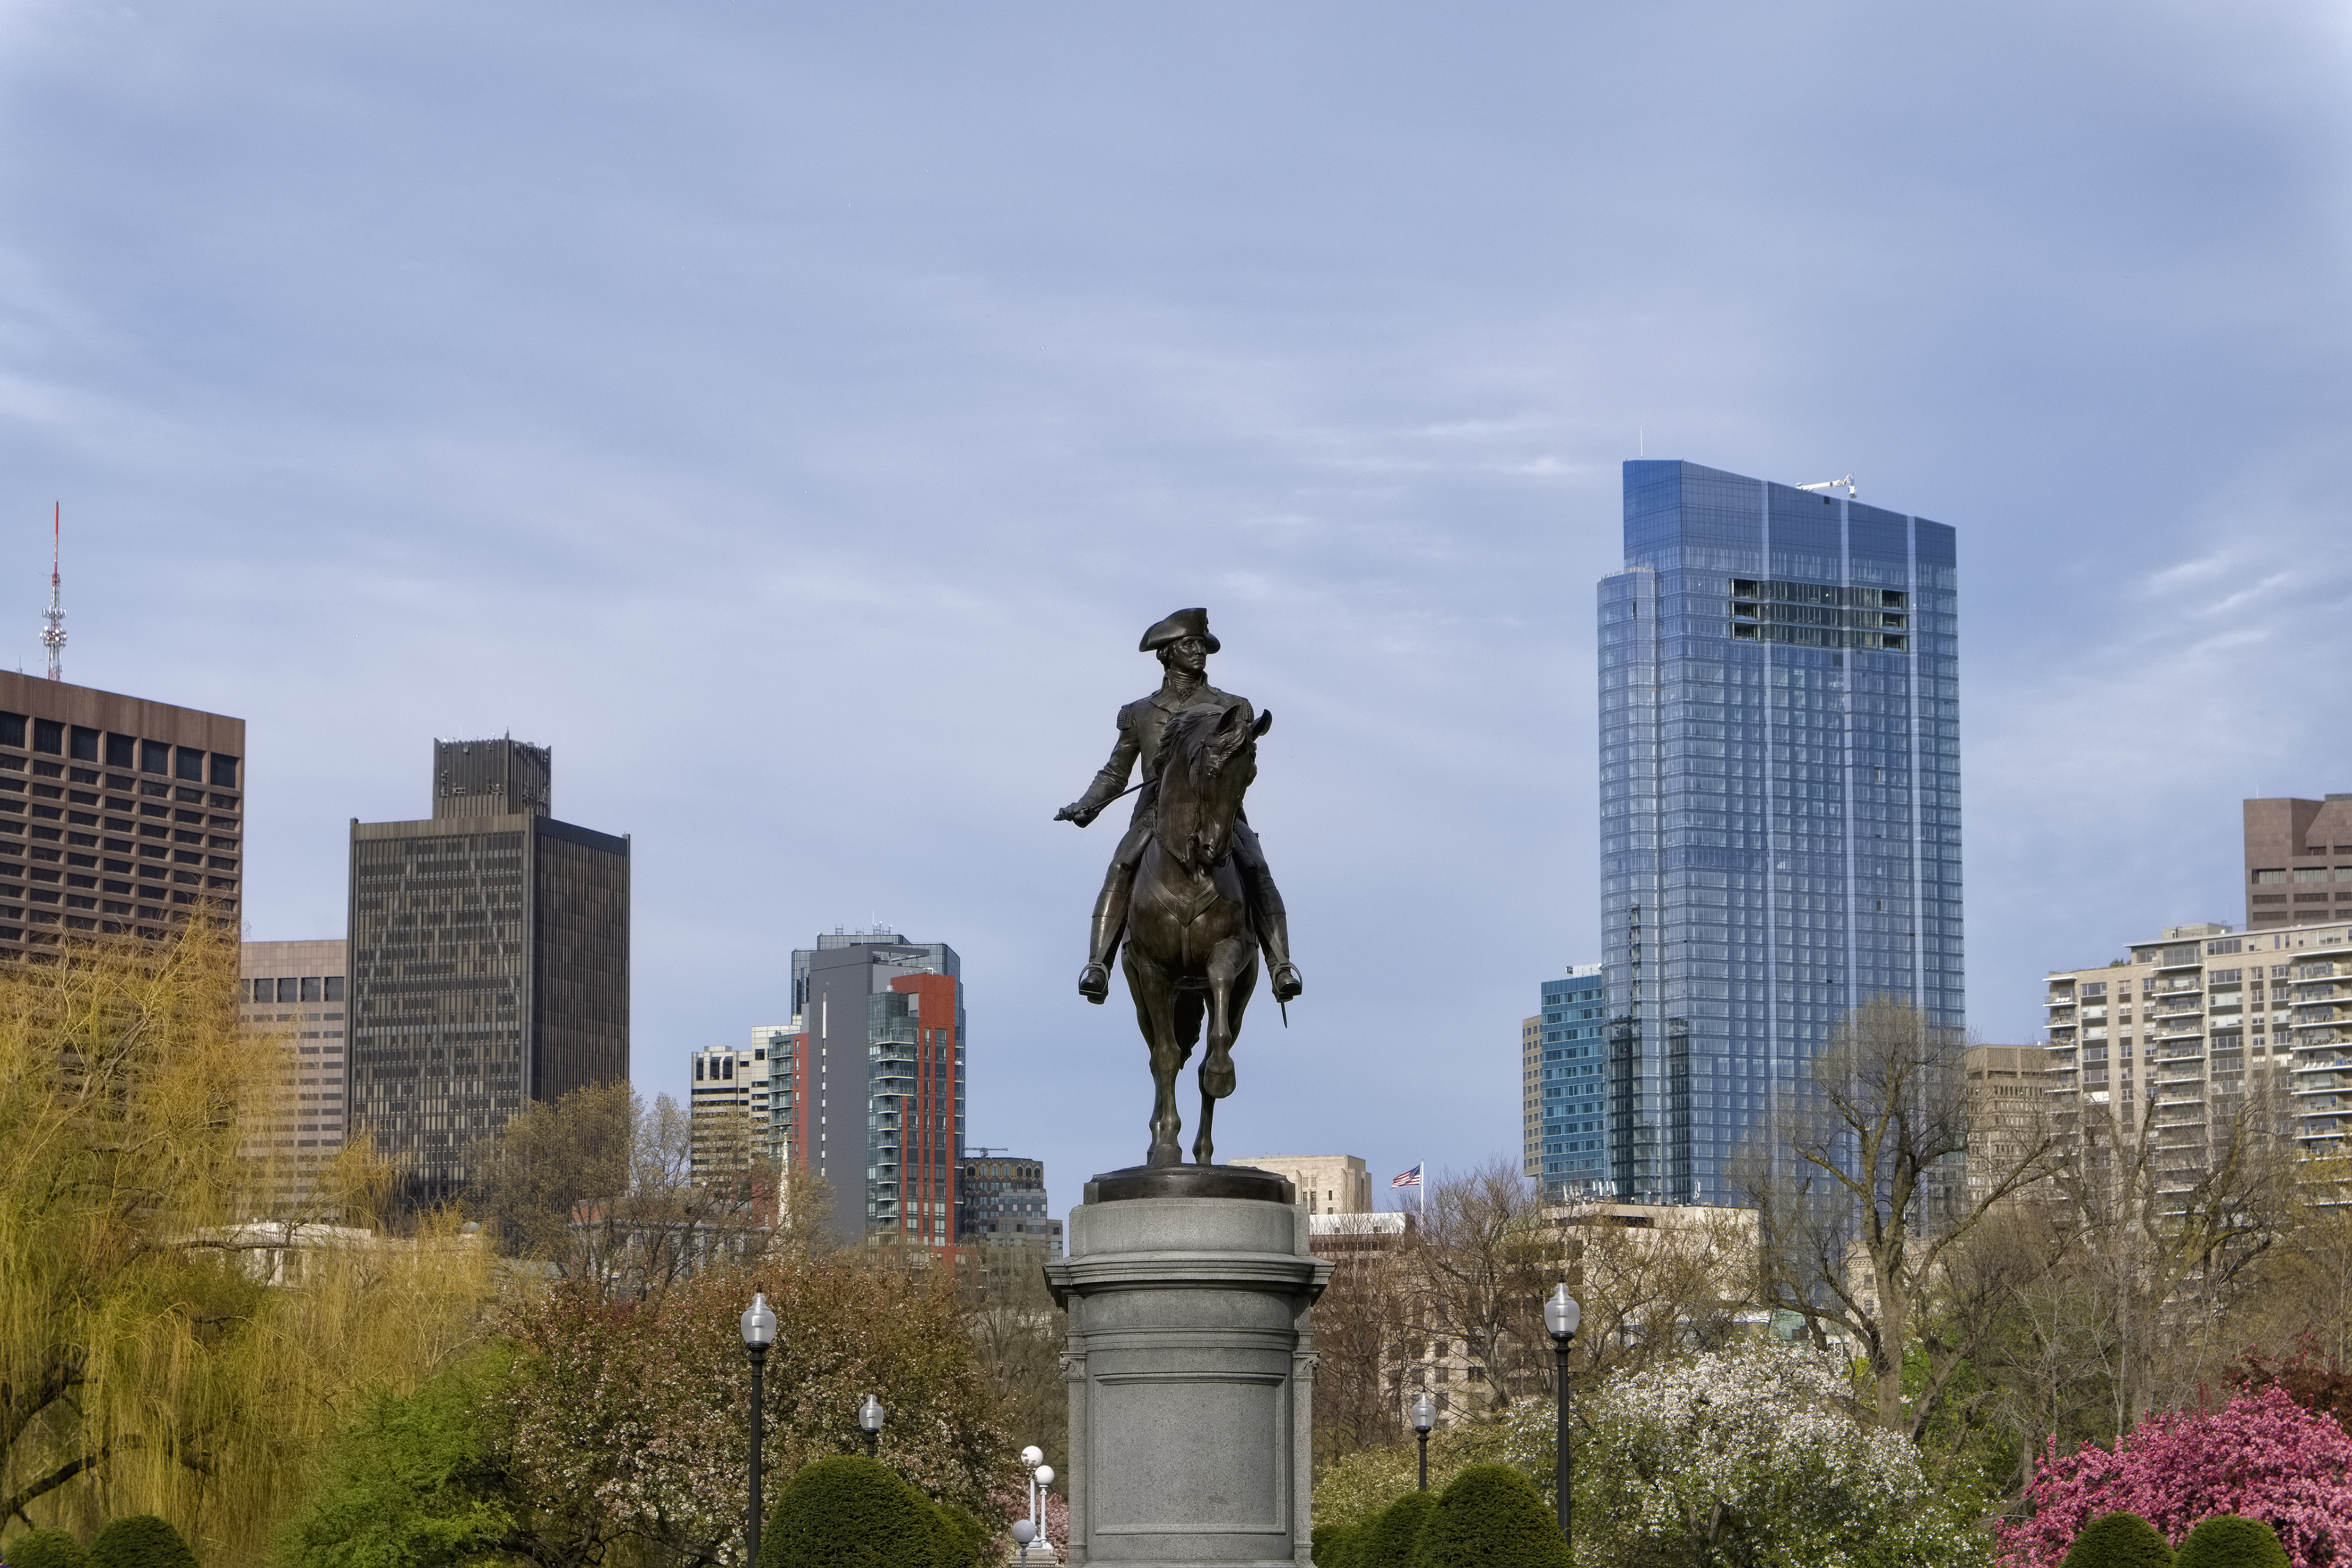 Massachusetts, Boston, Statue of George Washington in Boston Public Garden